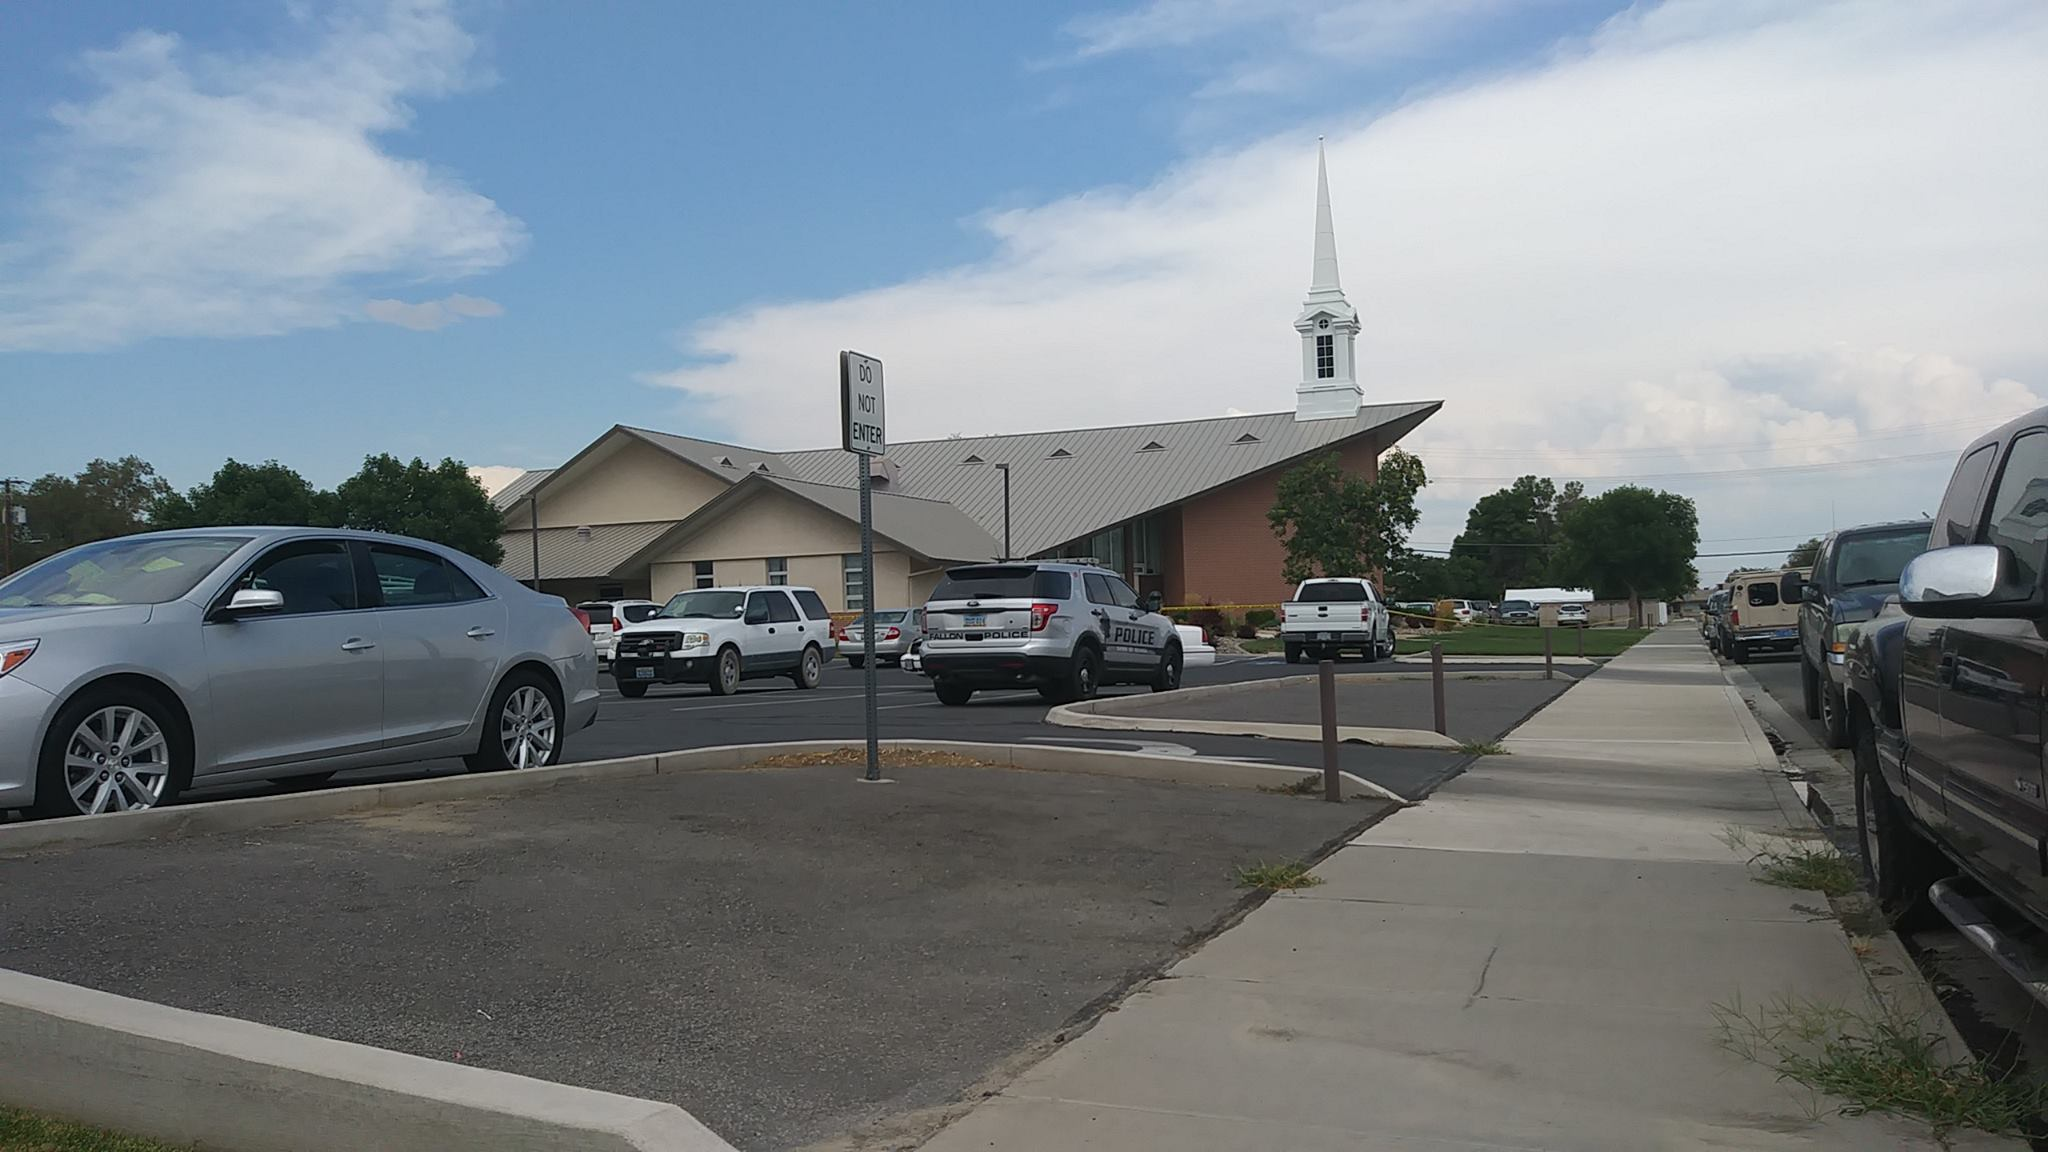 A shooting at The Church of Jesus Christ of Latter-day Saints in Fallon, Nevada, occurred Sunday afternoon. (Photo: Don Will / Facebook)<p></p>